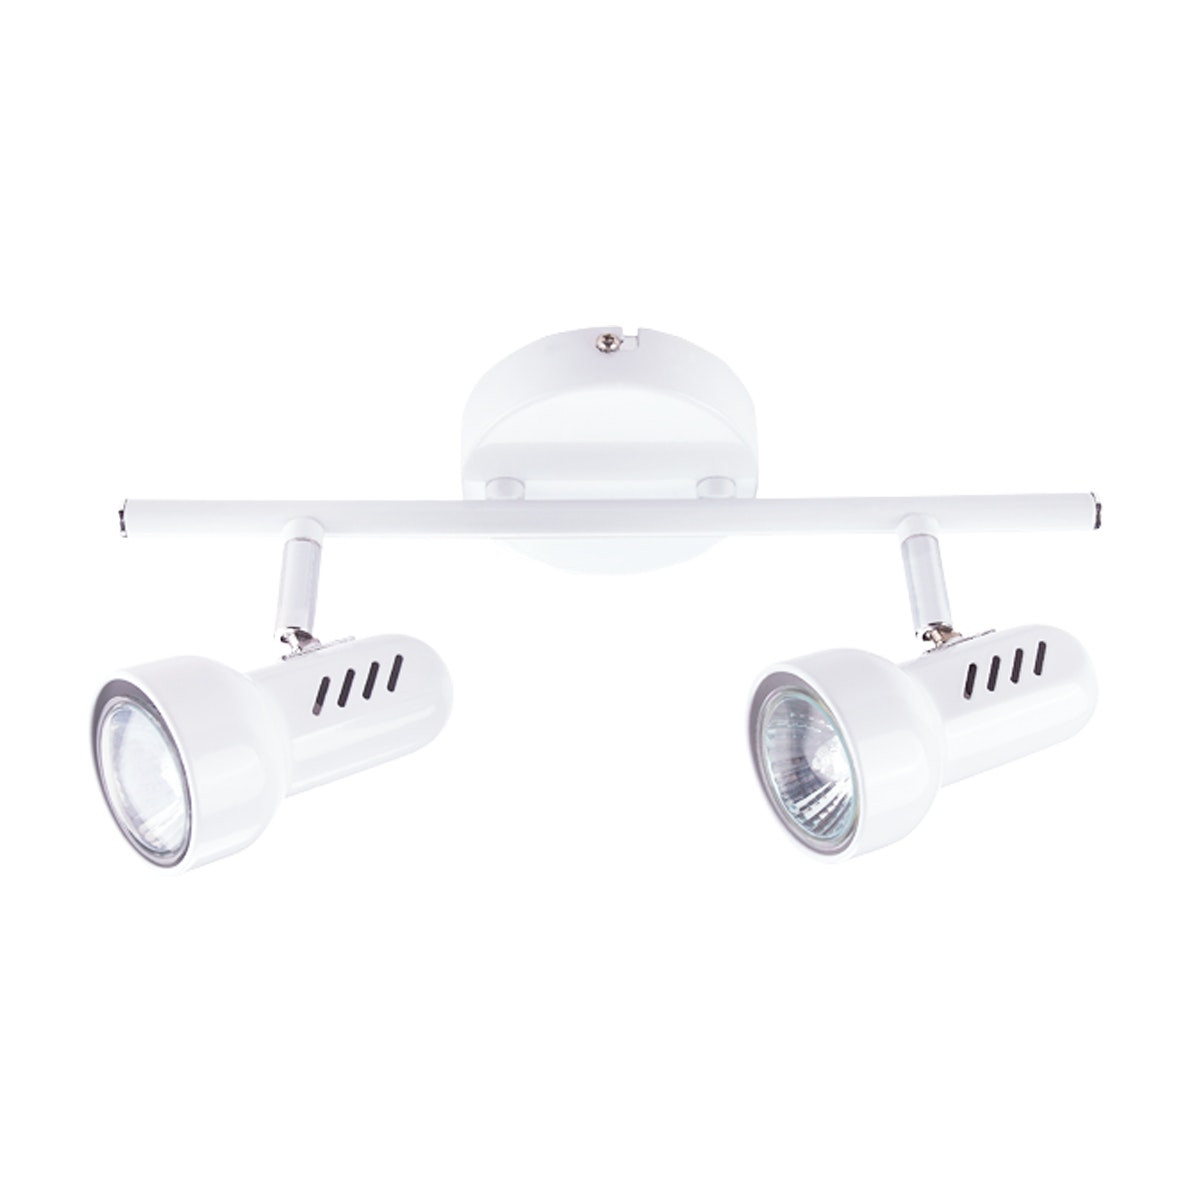 3+Projects Lampu Sorot / Spot Light / Plafon / Ceiling / Wall Lamp 3+FNBT2117/W